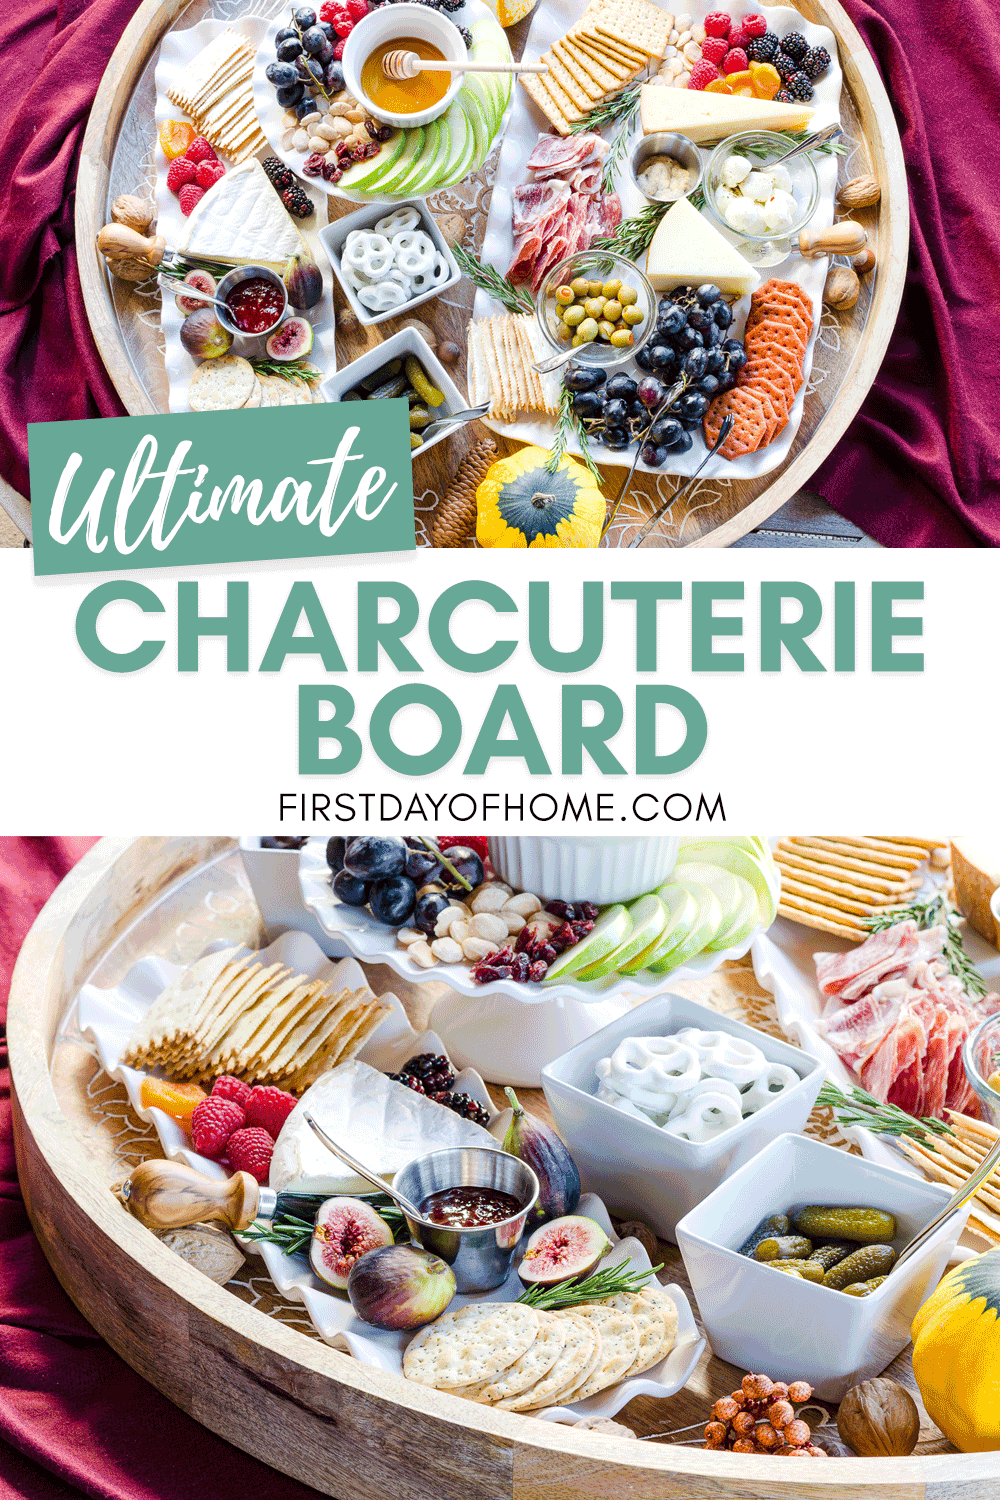 Charcuterie board ideas with meats, cheeses, crackers, olives, preserves, nuts, honey and more